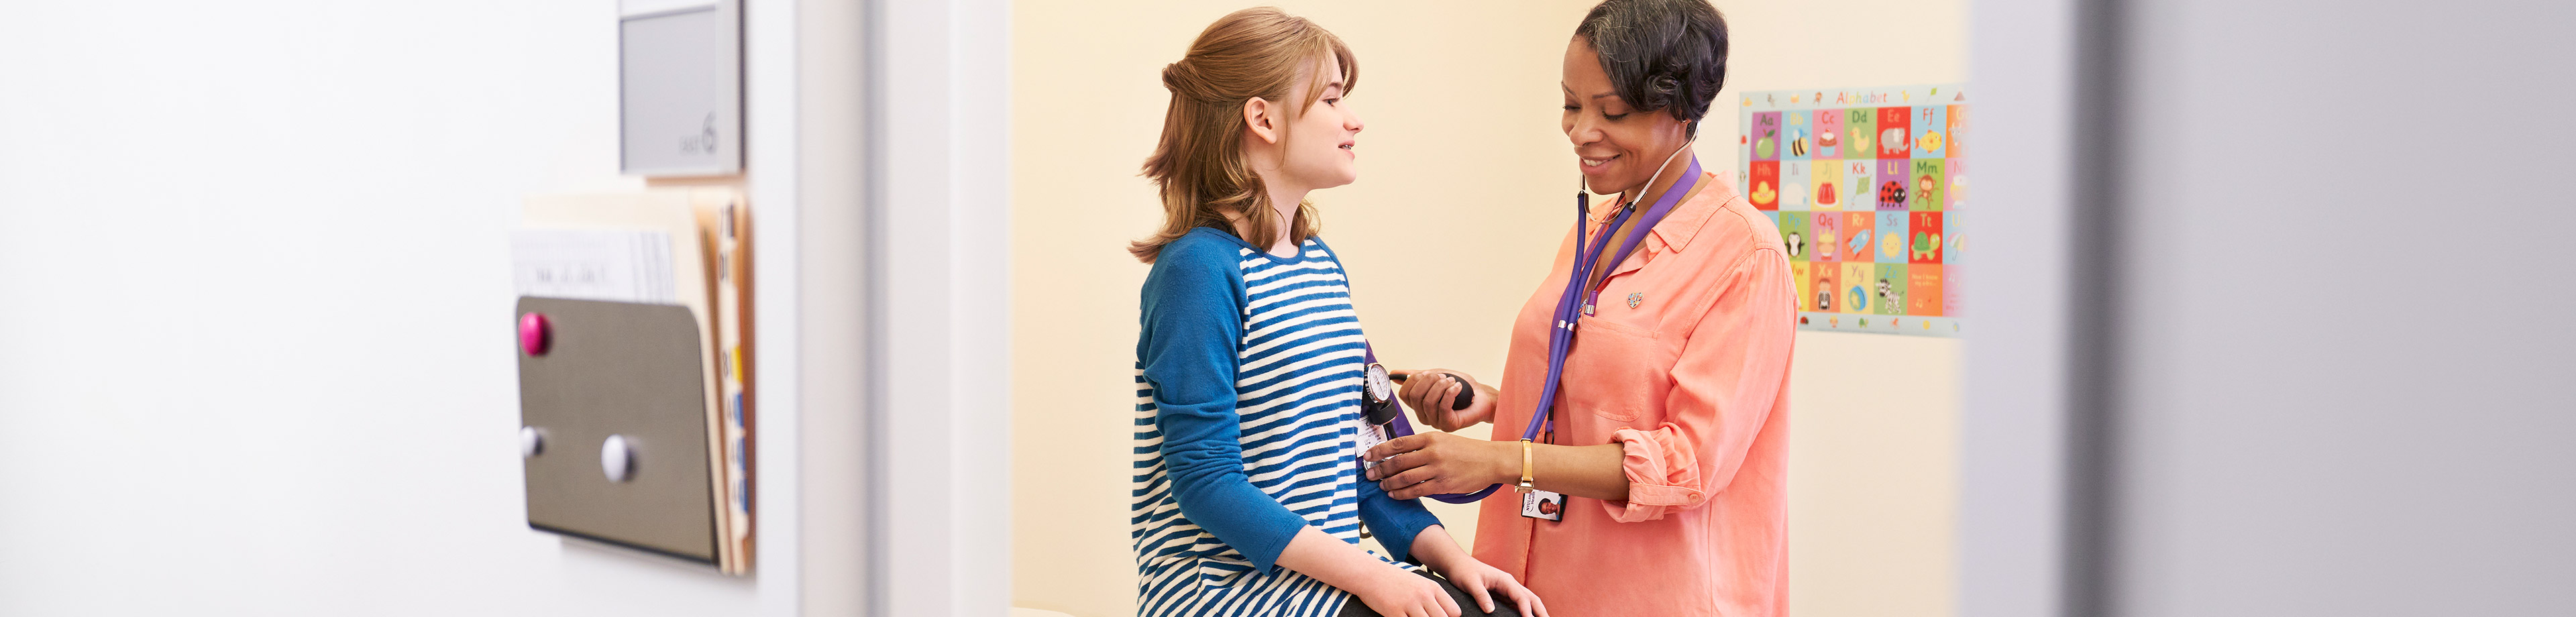 Doctor Checks Pediatric Patient's Blood Pressure